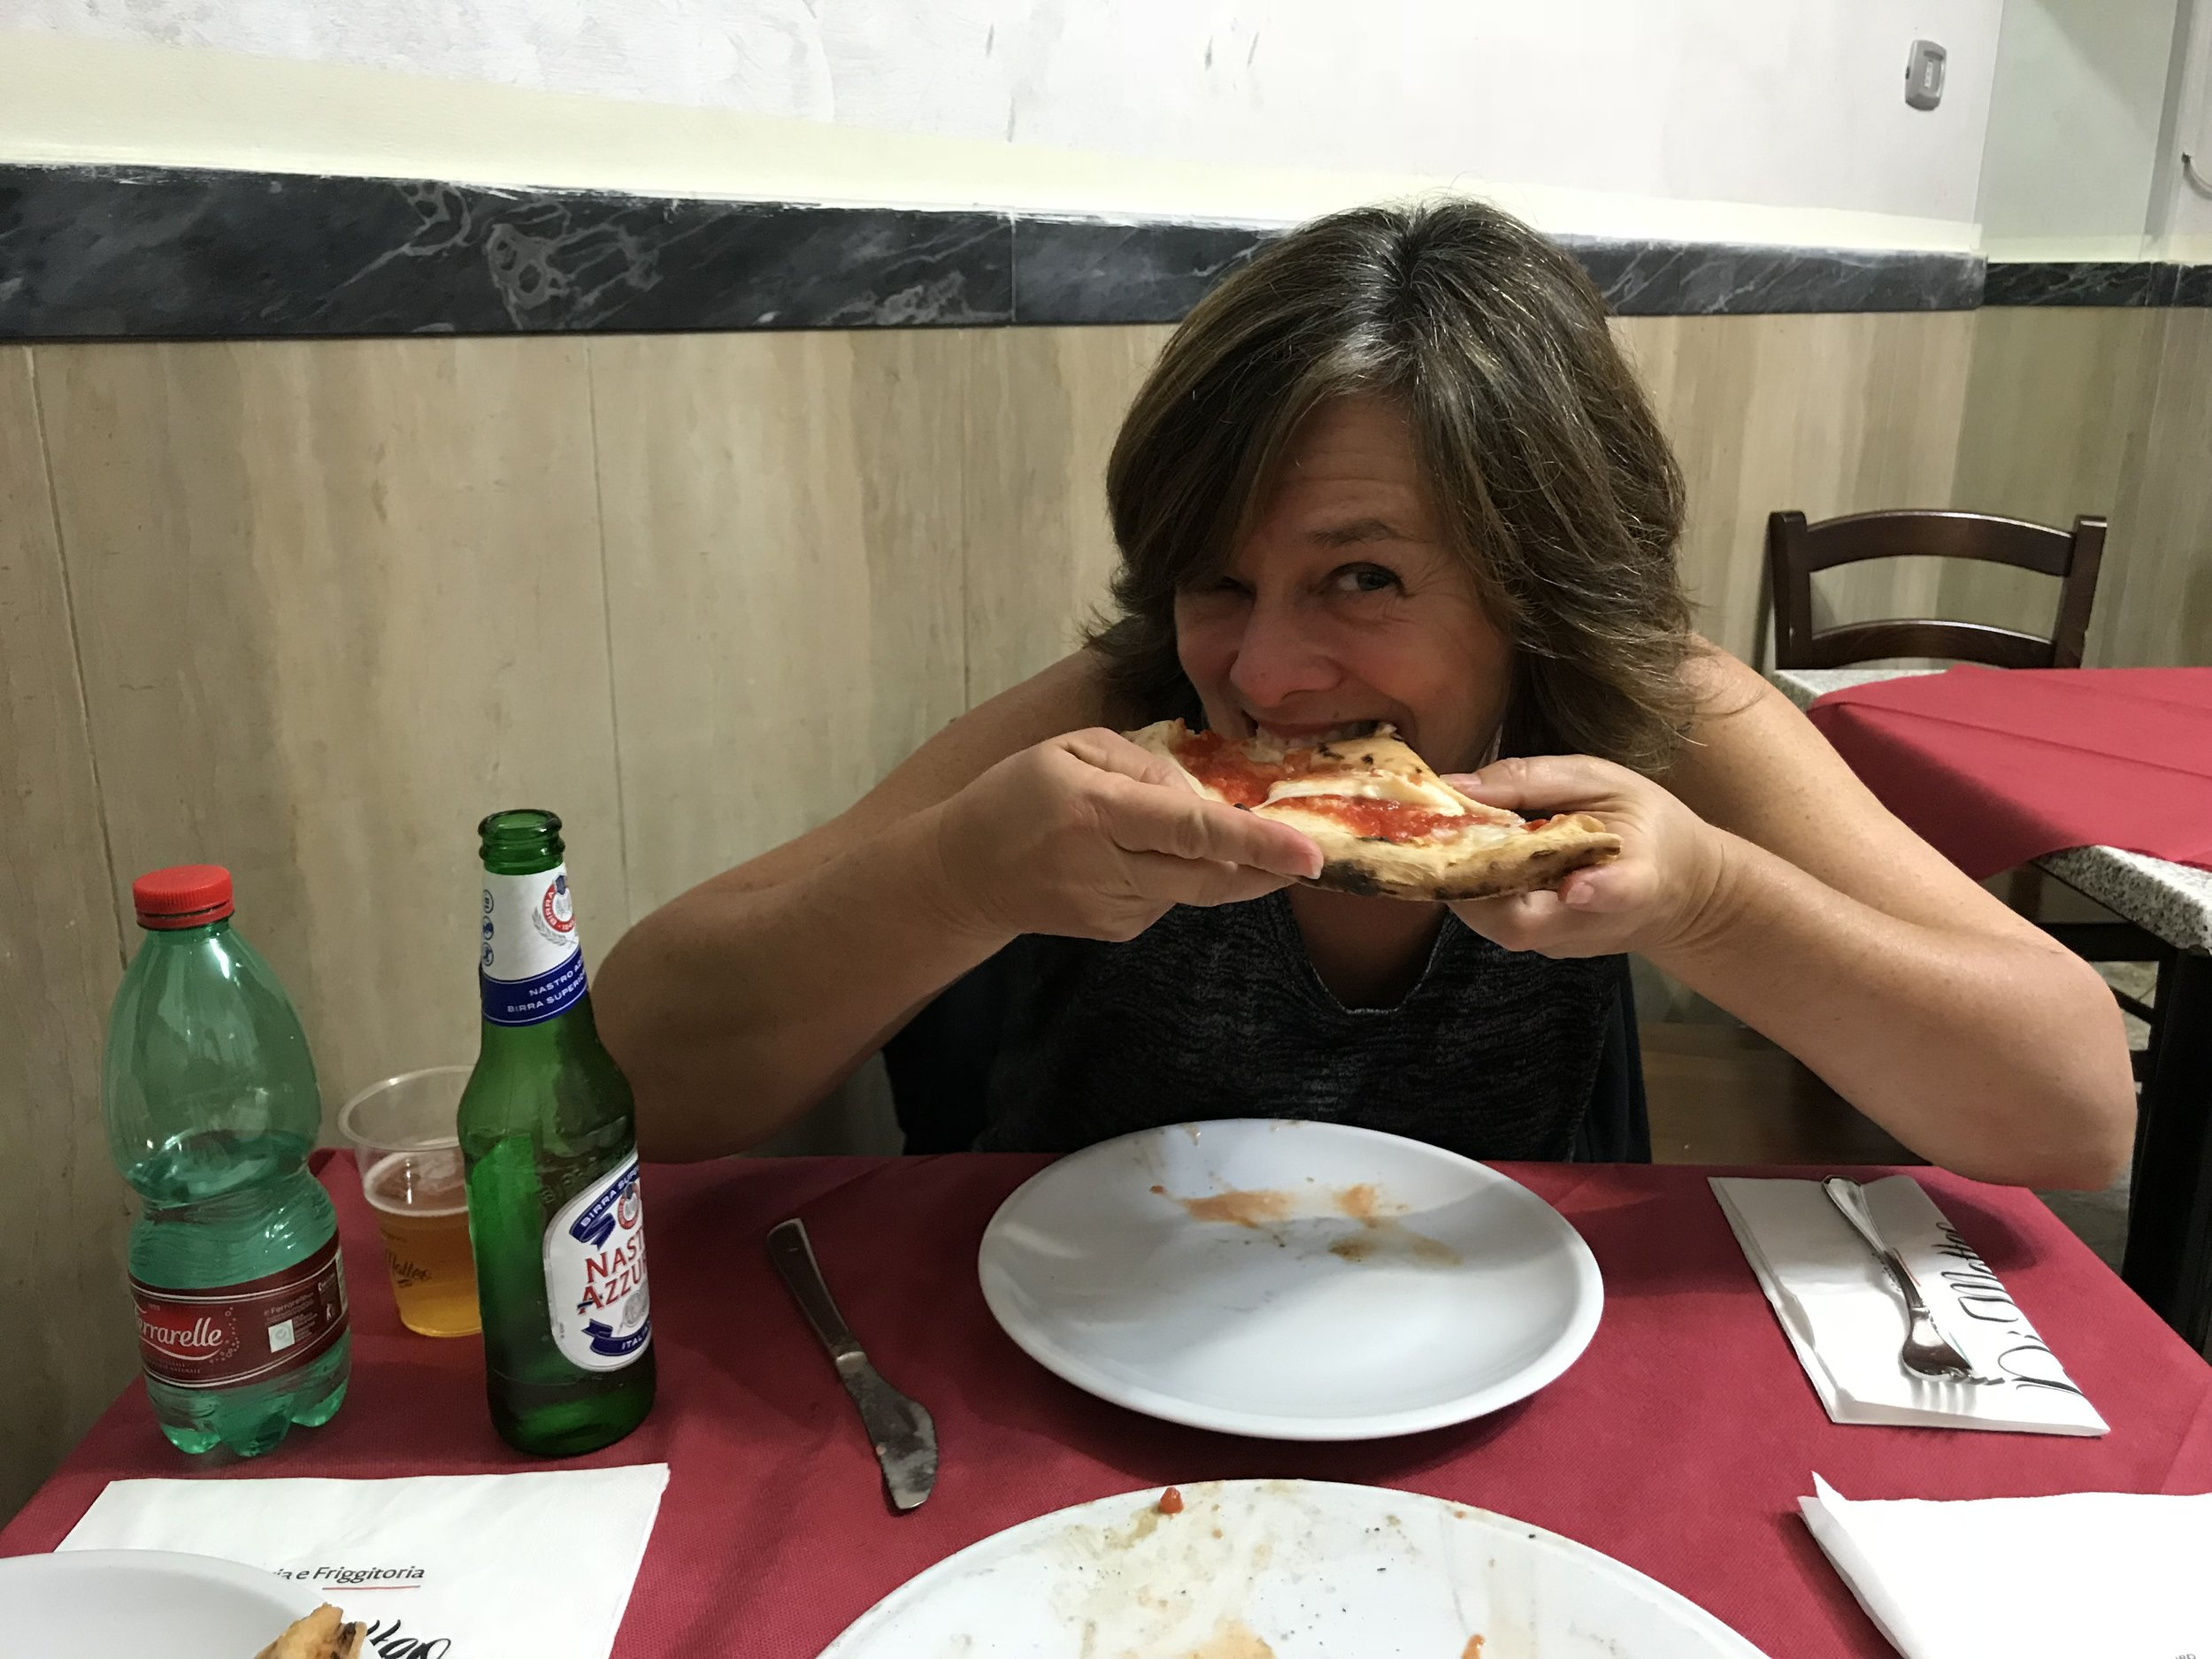 Betsy eating a slice of Margherita pizza at Di Matteo